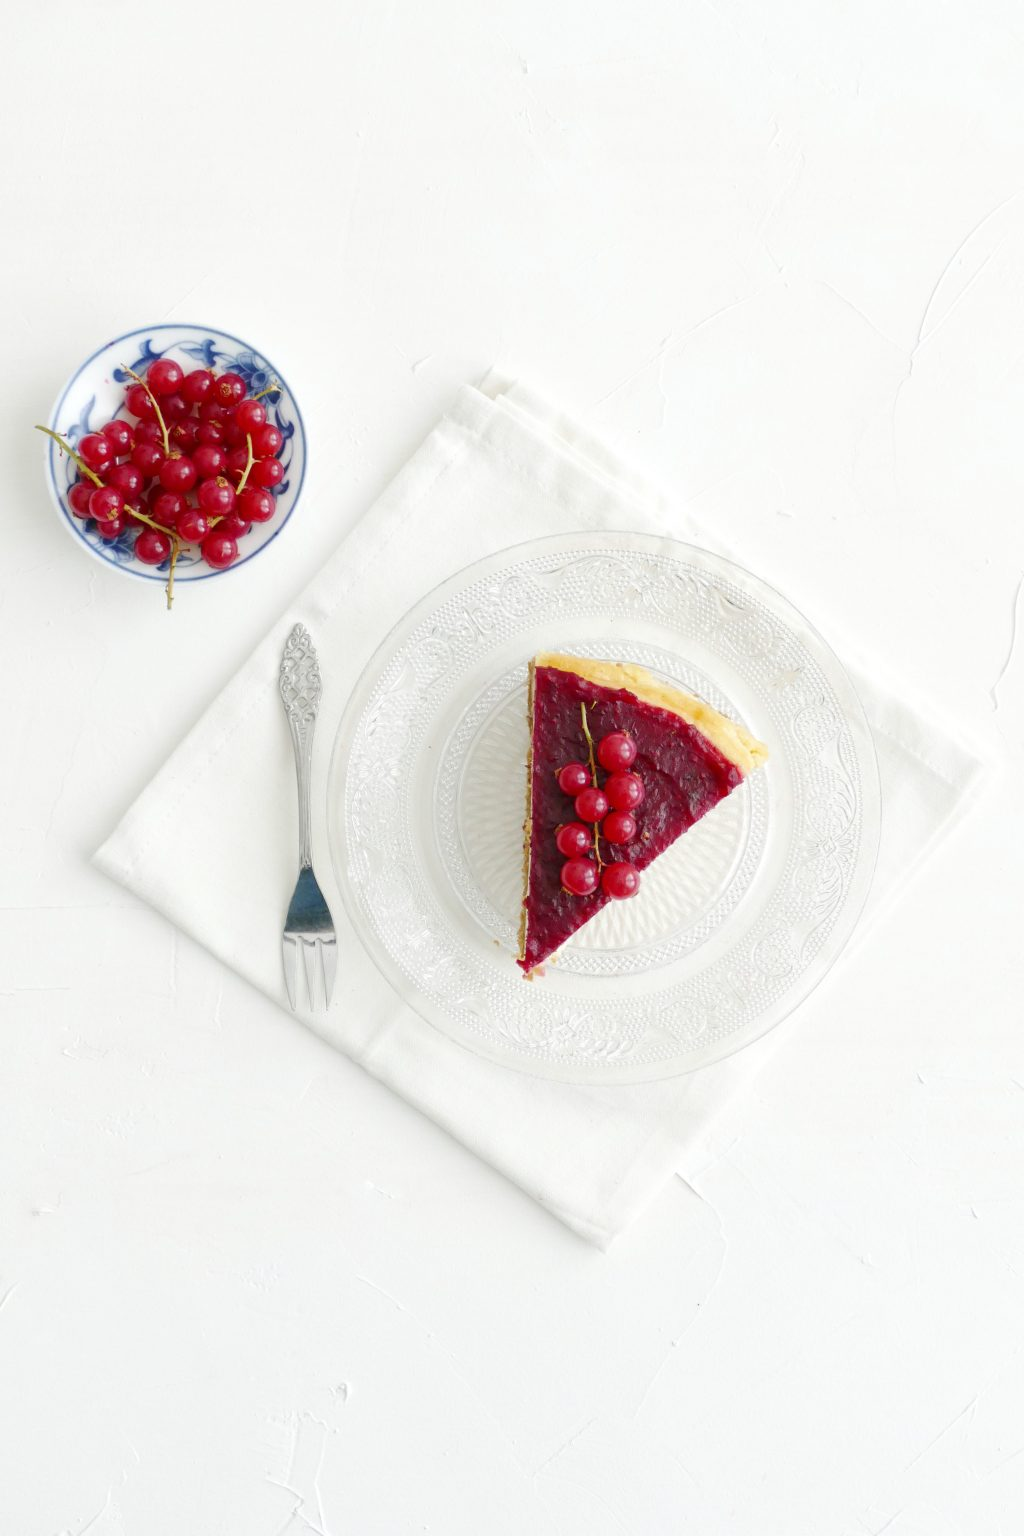 vanille cheesecake met cranberry